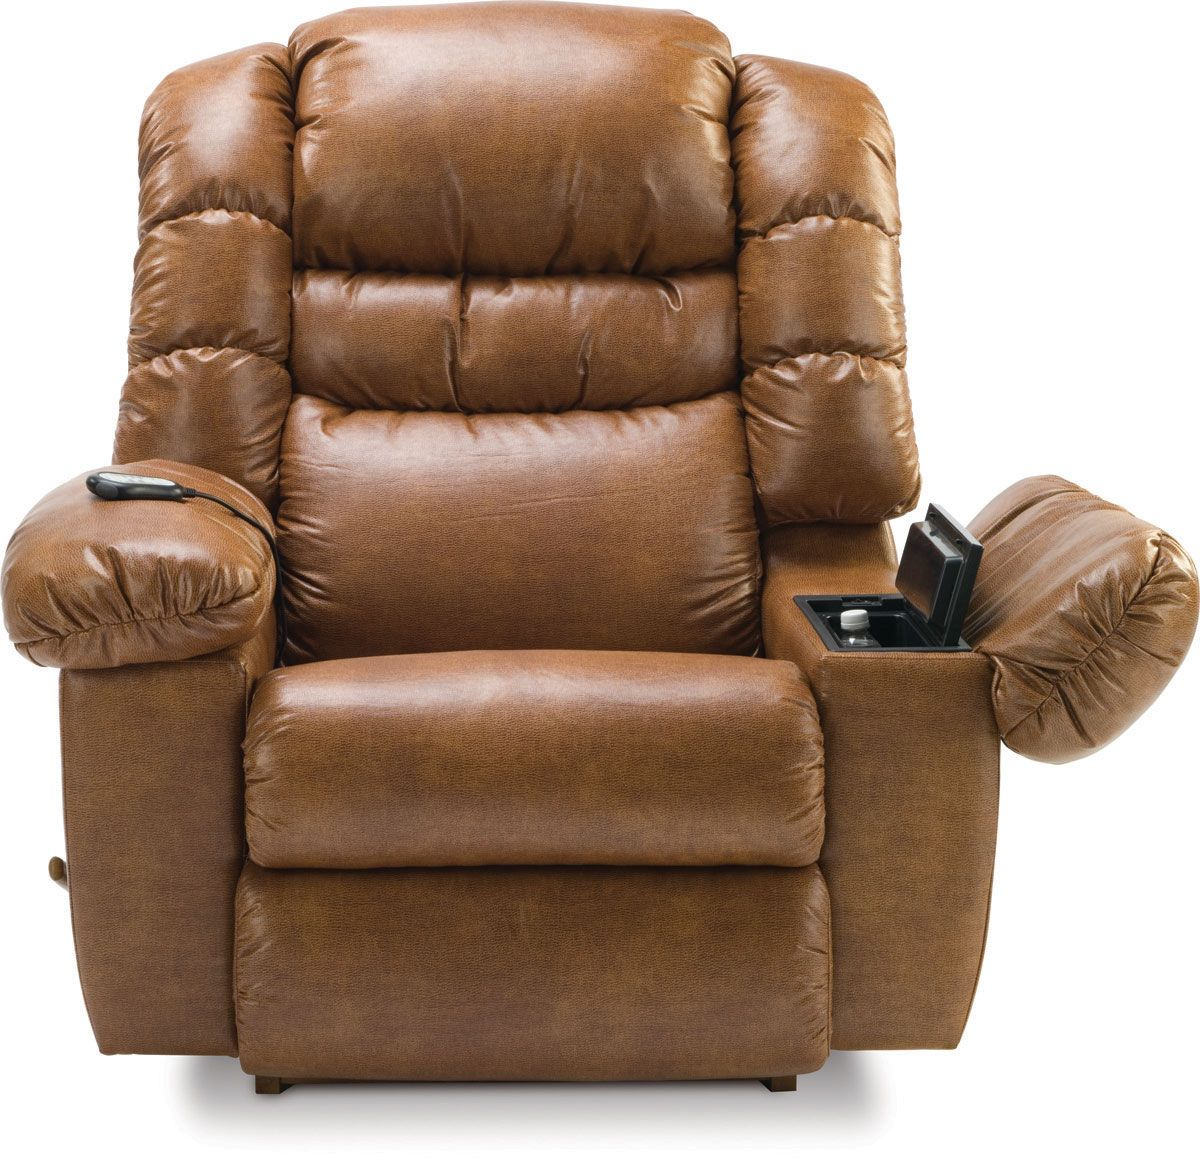 Effigy Of The Most Comfortable Recliners That Are Perfect For Relaxing